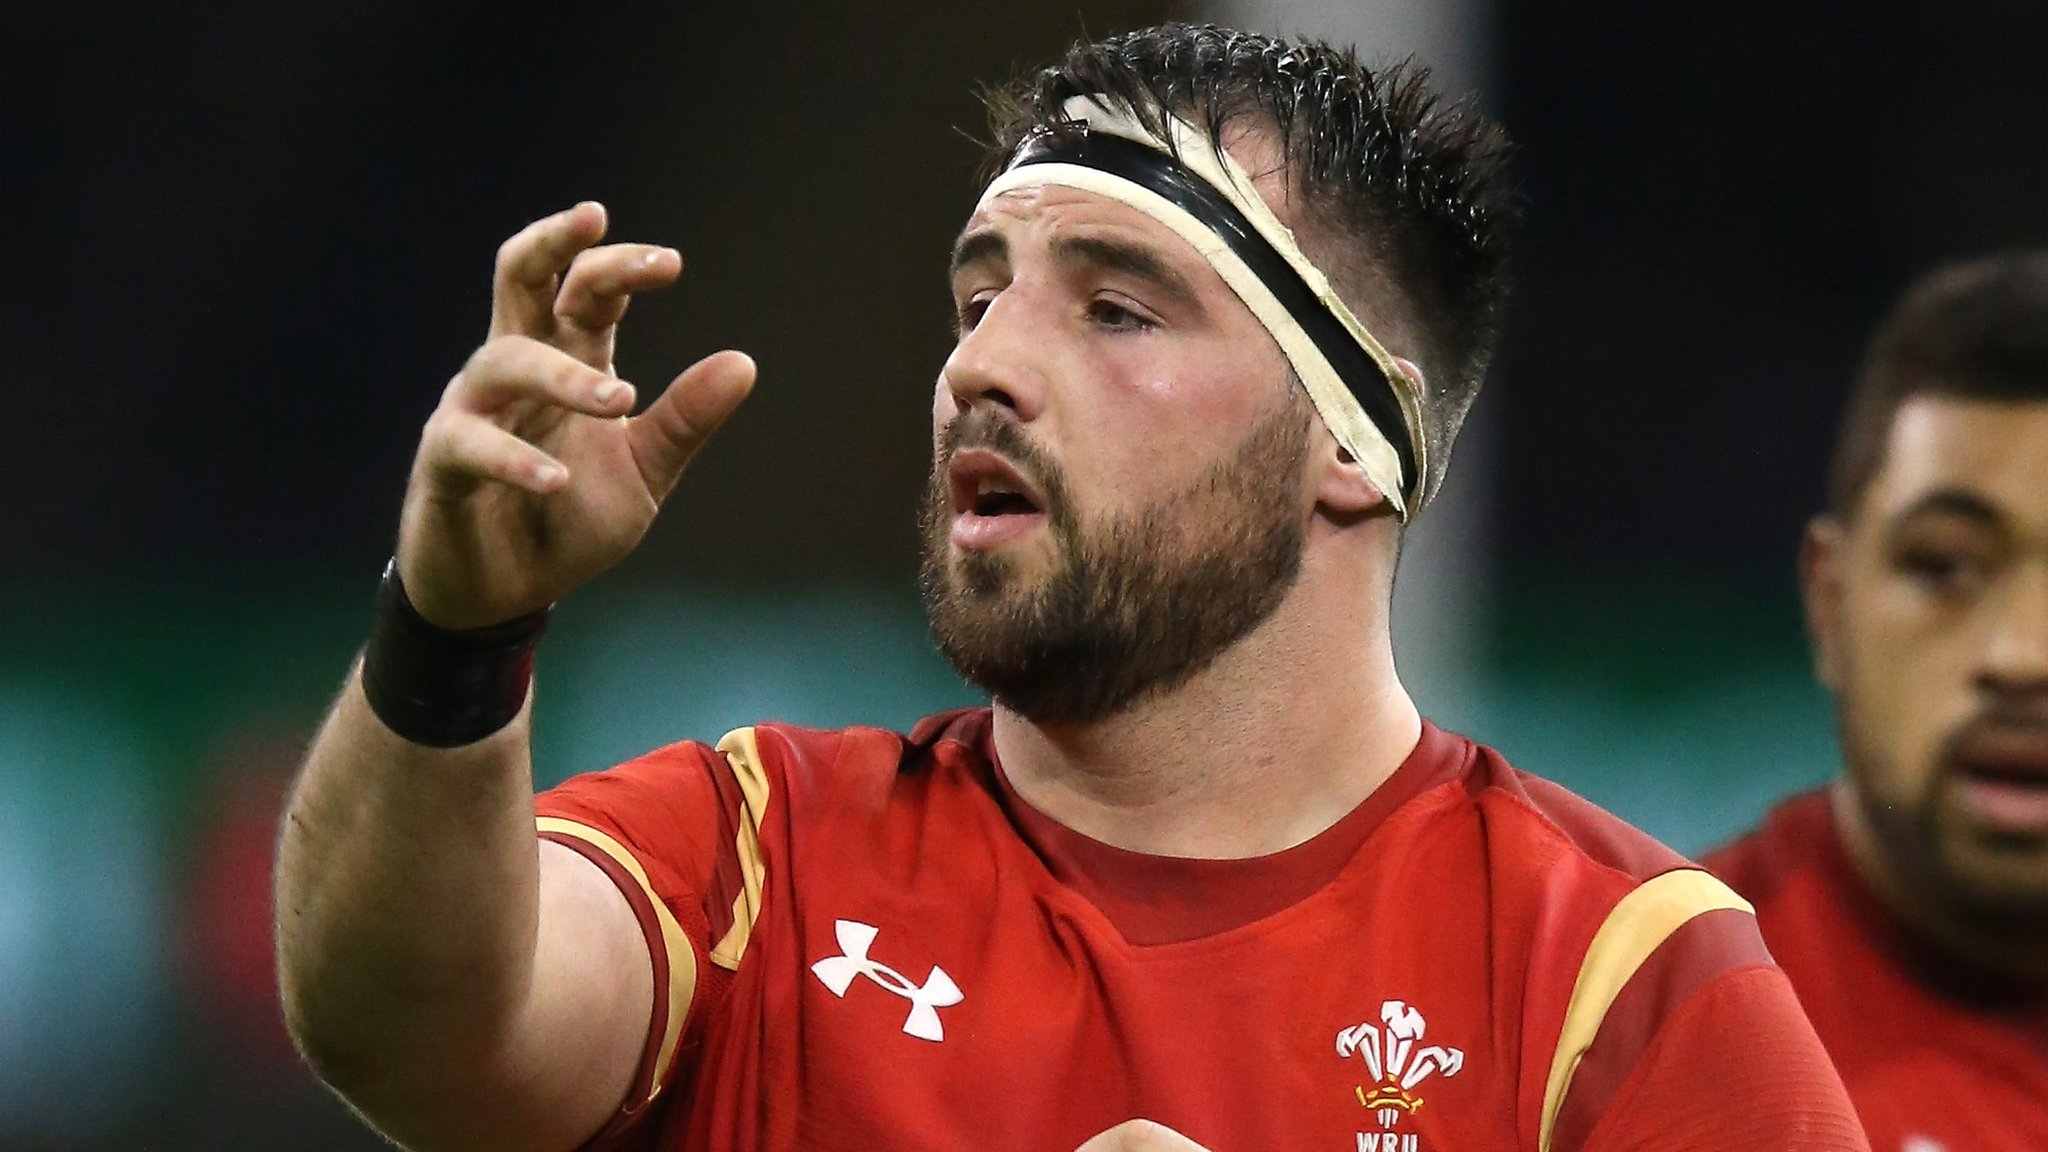 Rugby star feared for hand after lion bite